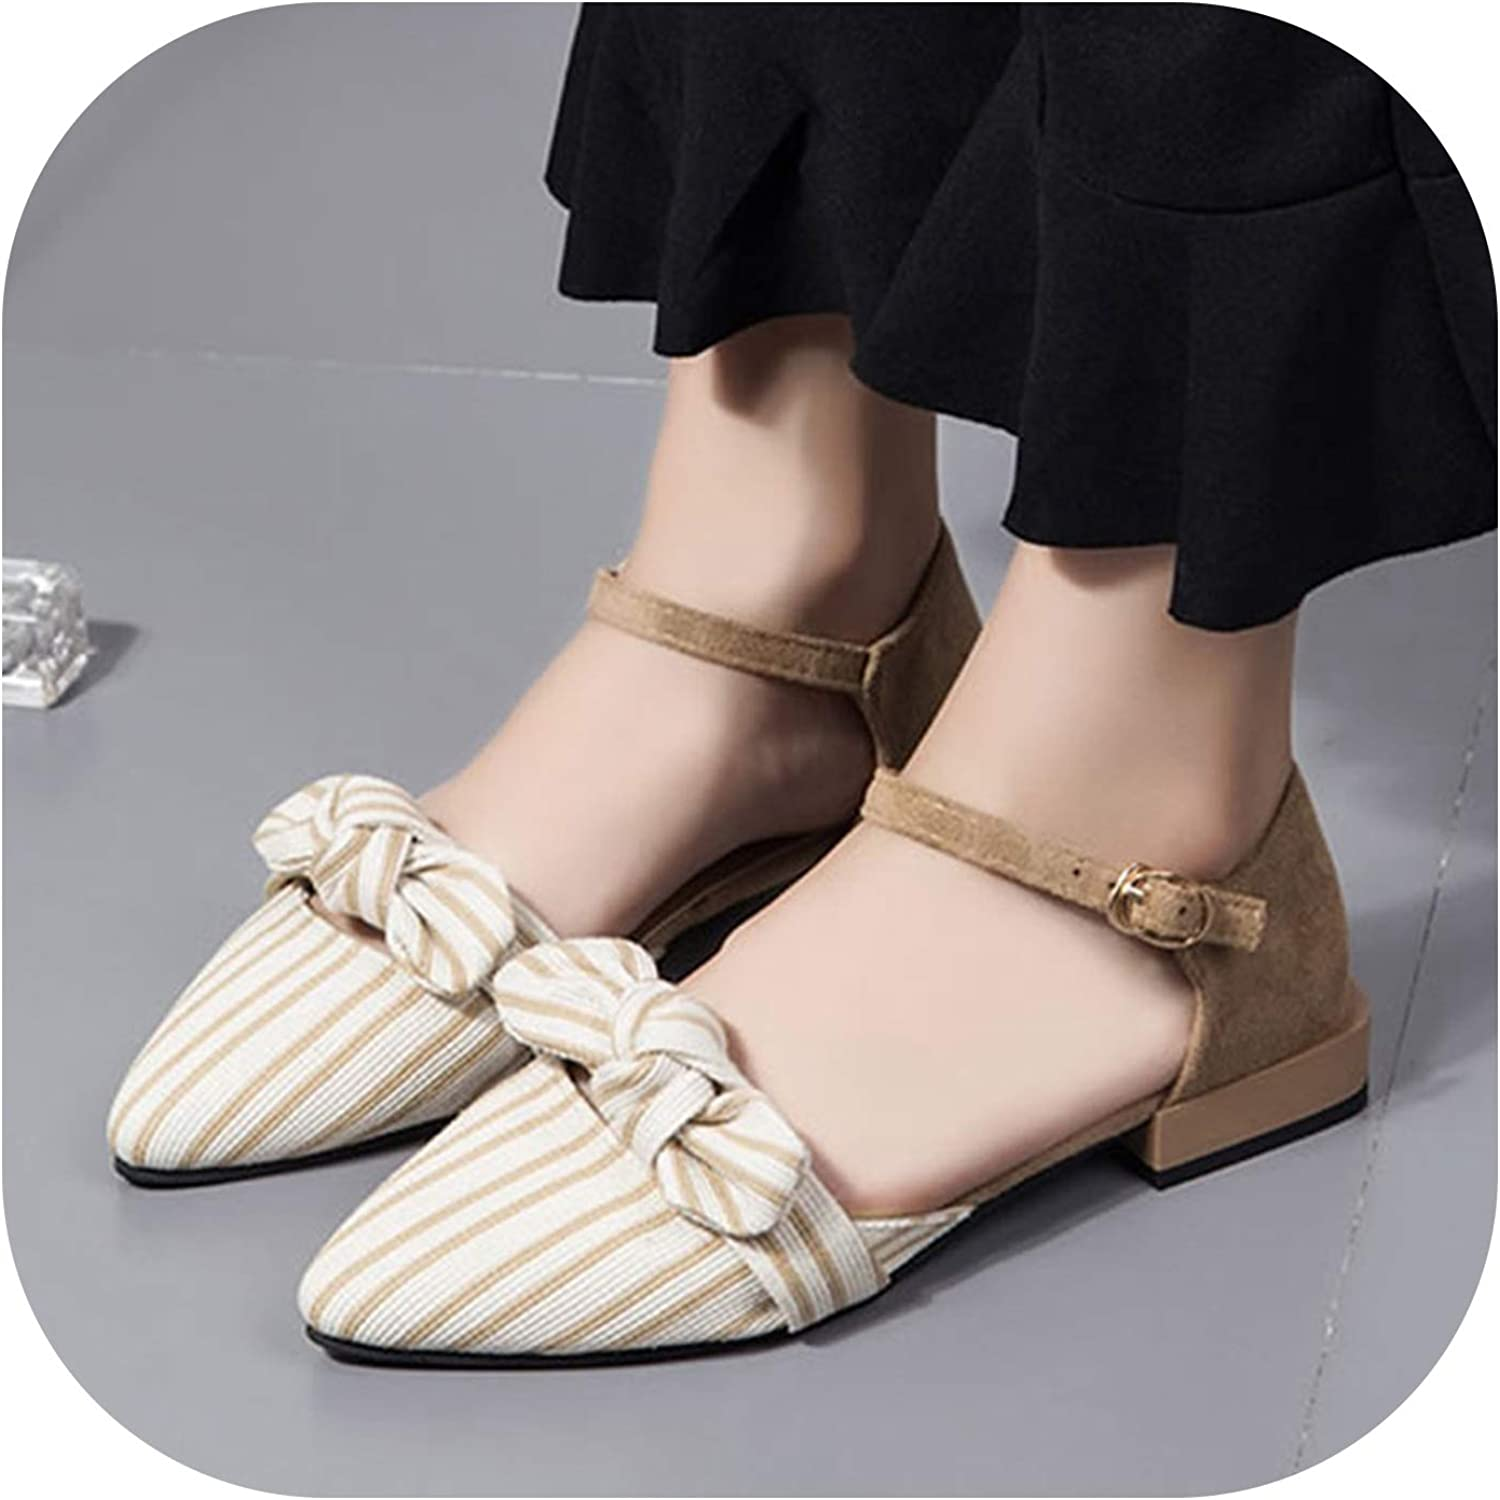 Betterluse Shallow Flats Women Sandals Pointed Toe Ankle Strap Sandals Striped Flat Bow Ladies shoes